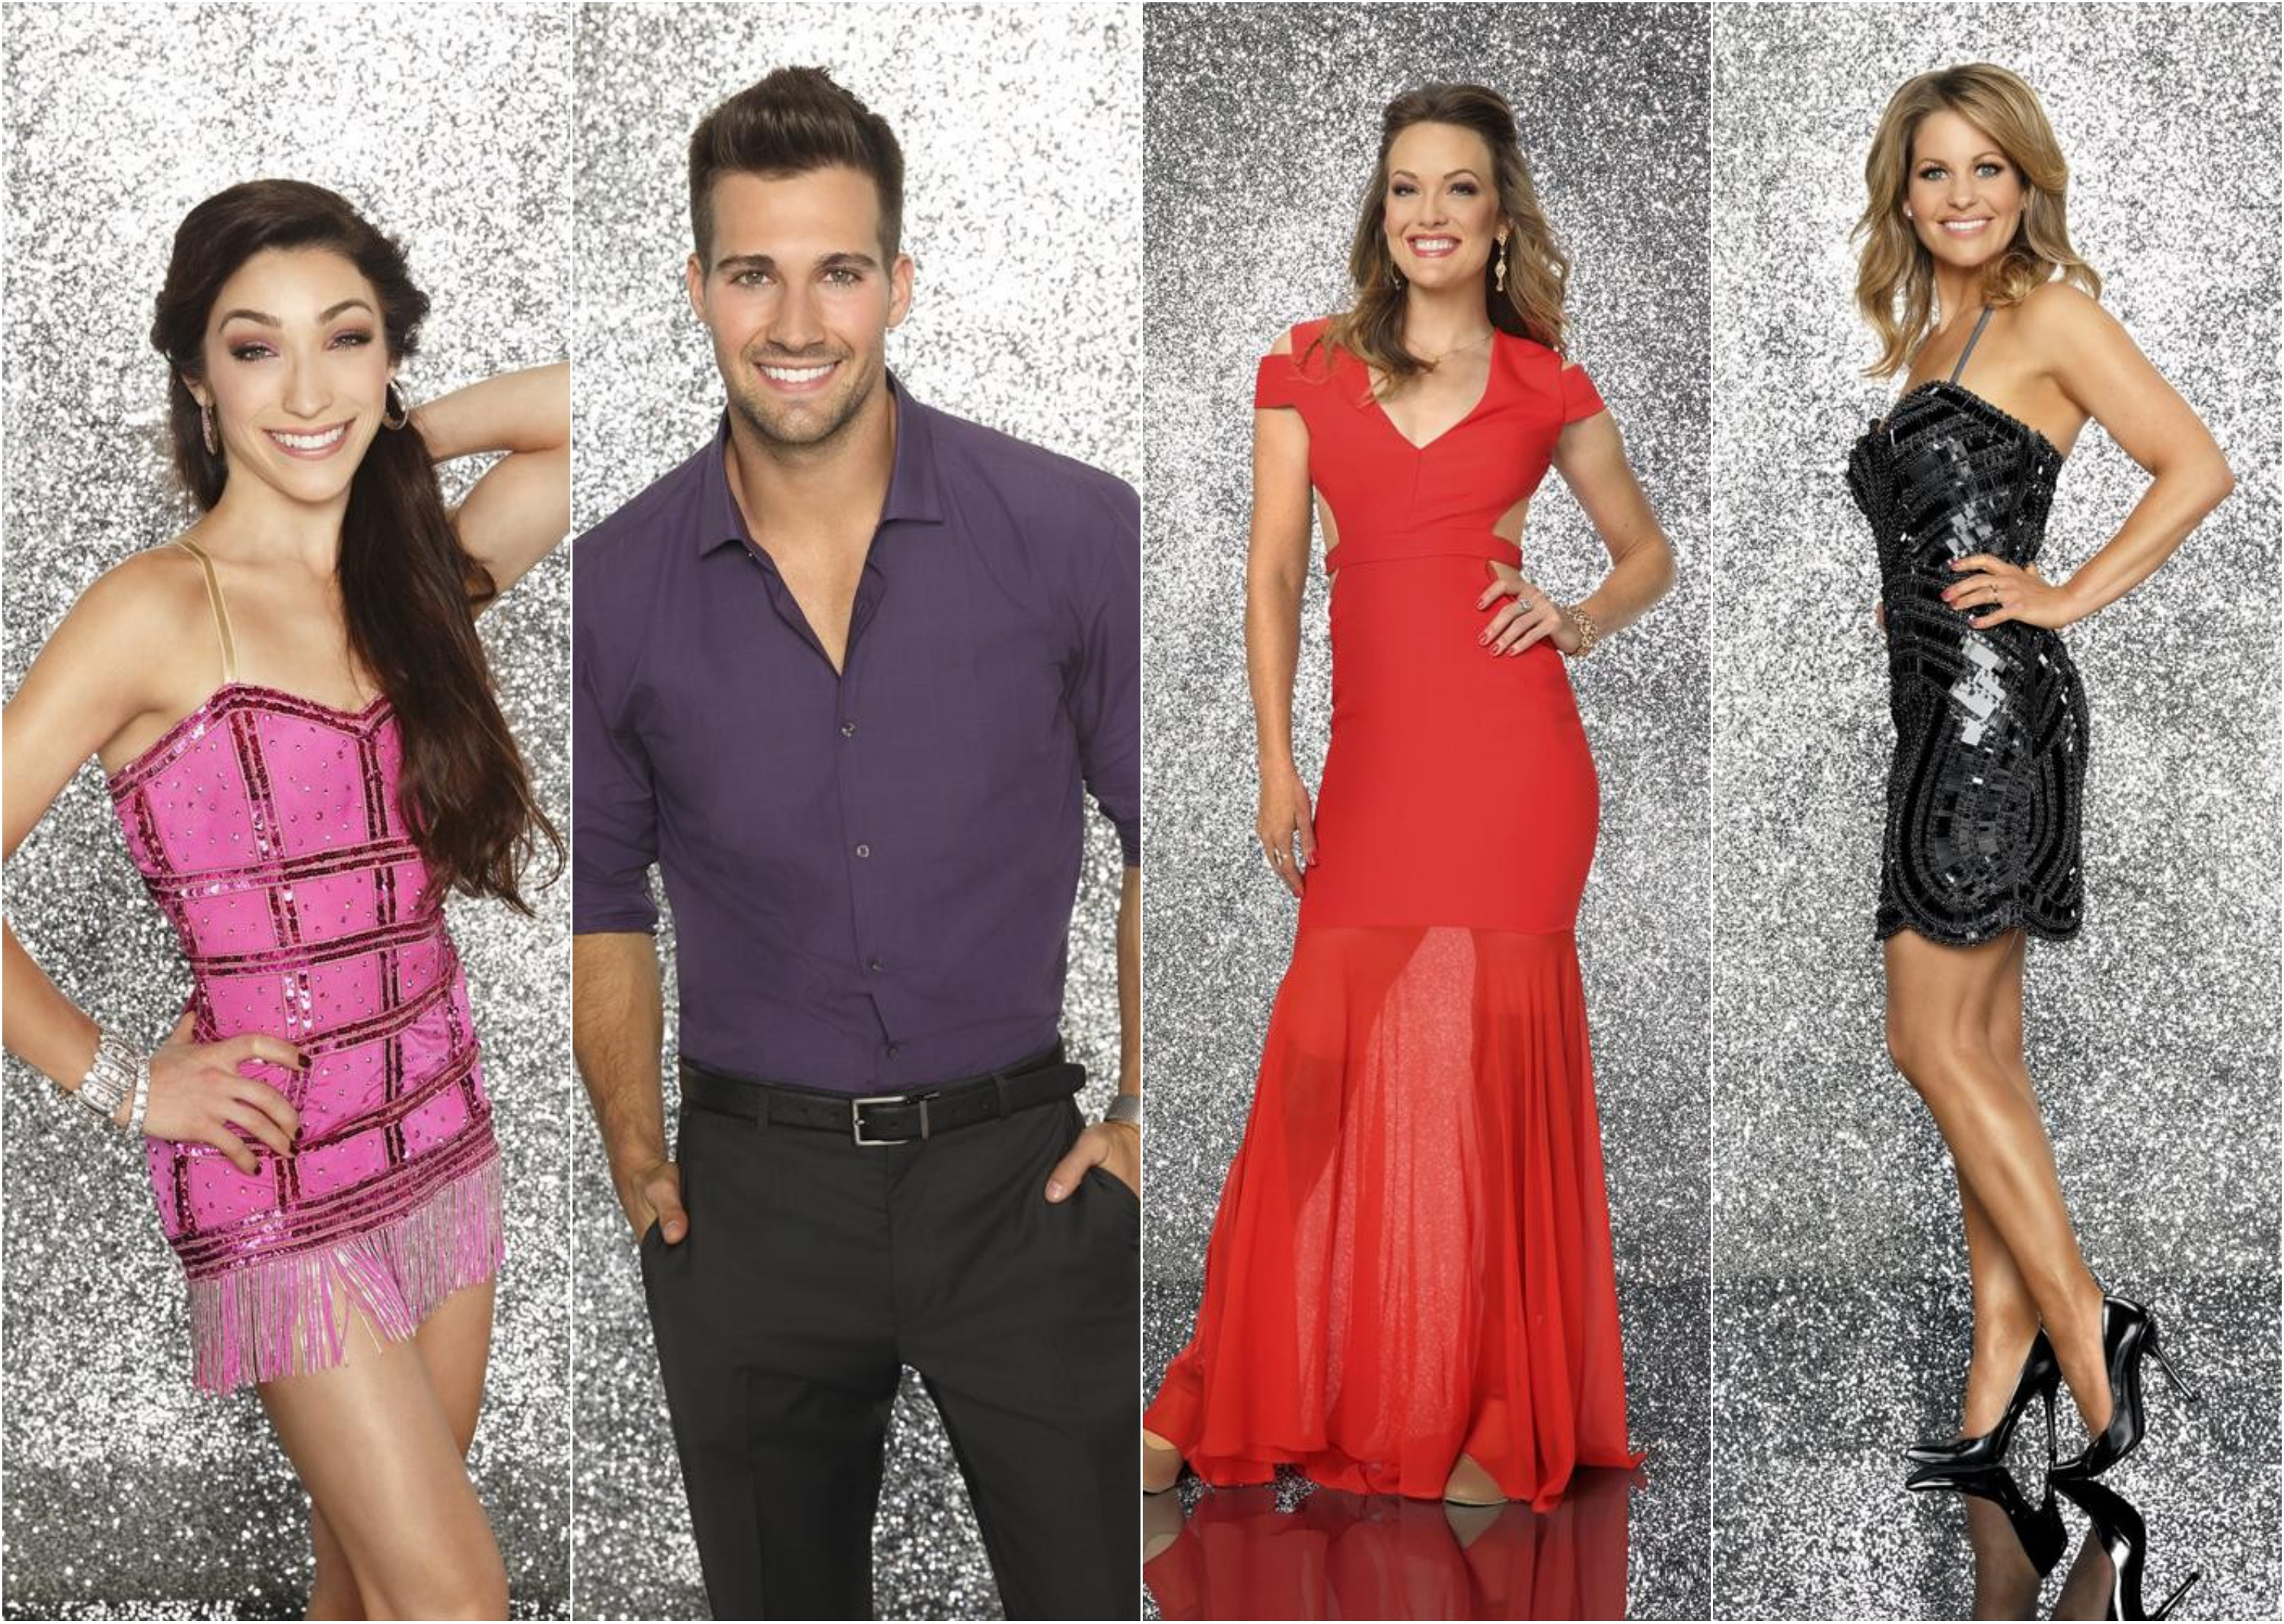 Who Got Voted Off Dancing with the Stars 2014 Tonight? Finals